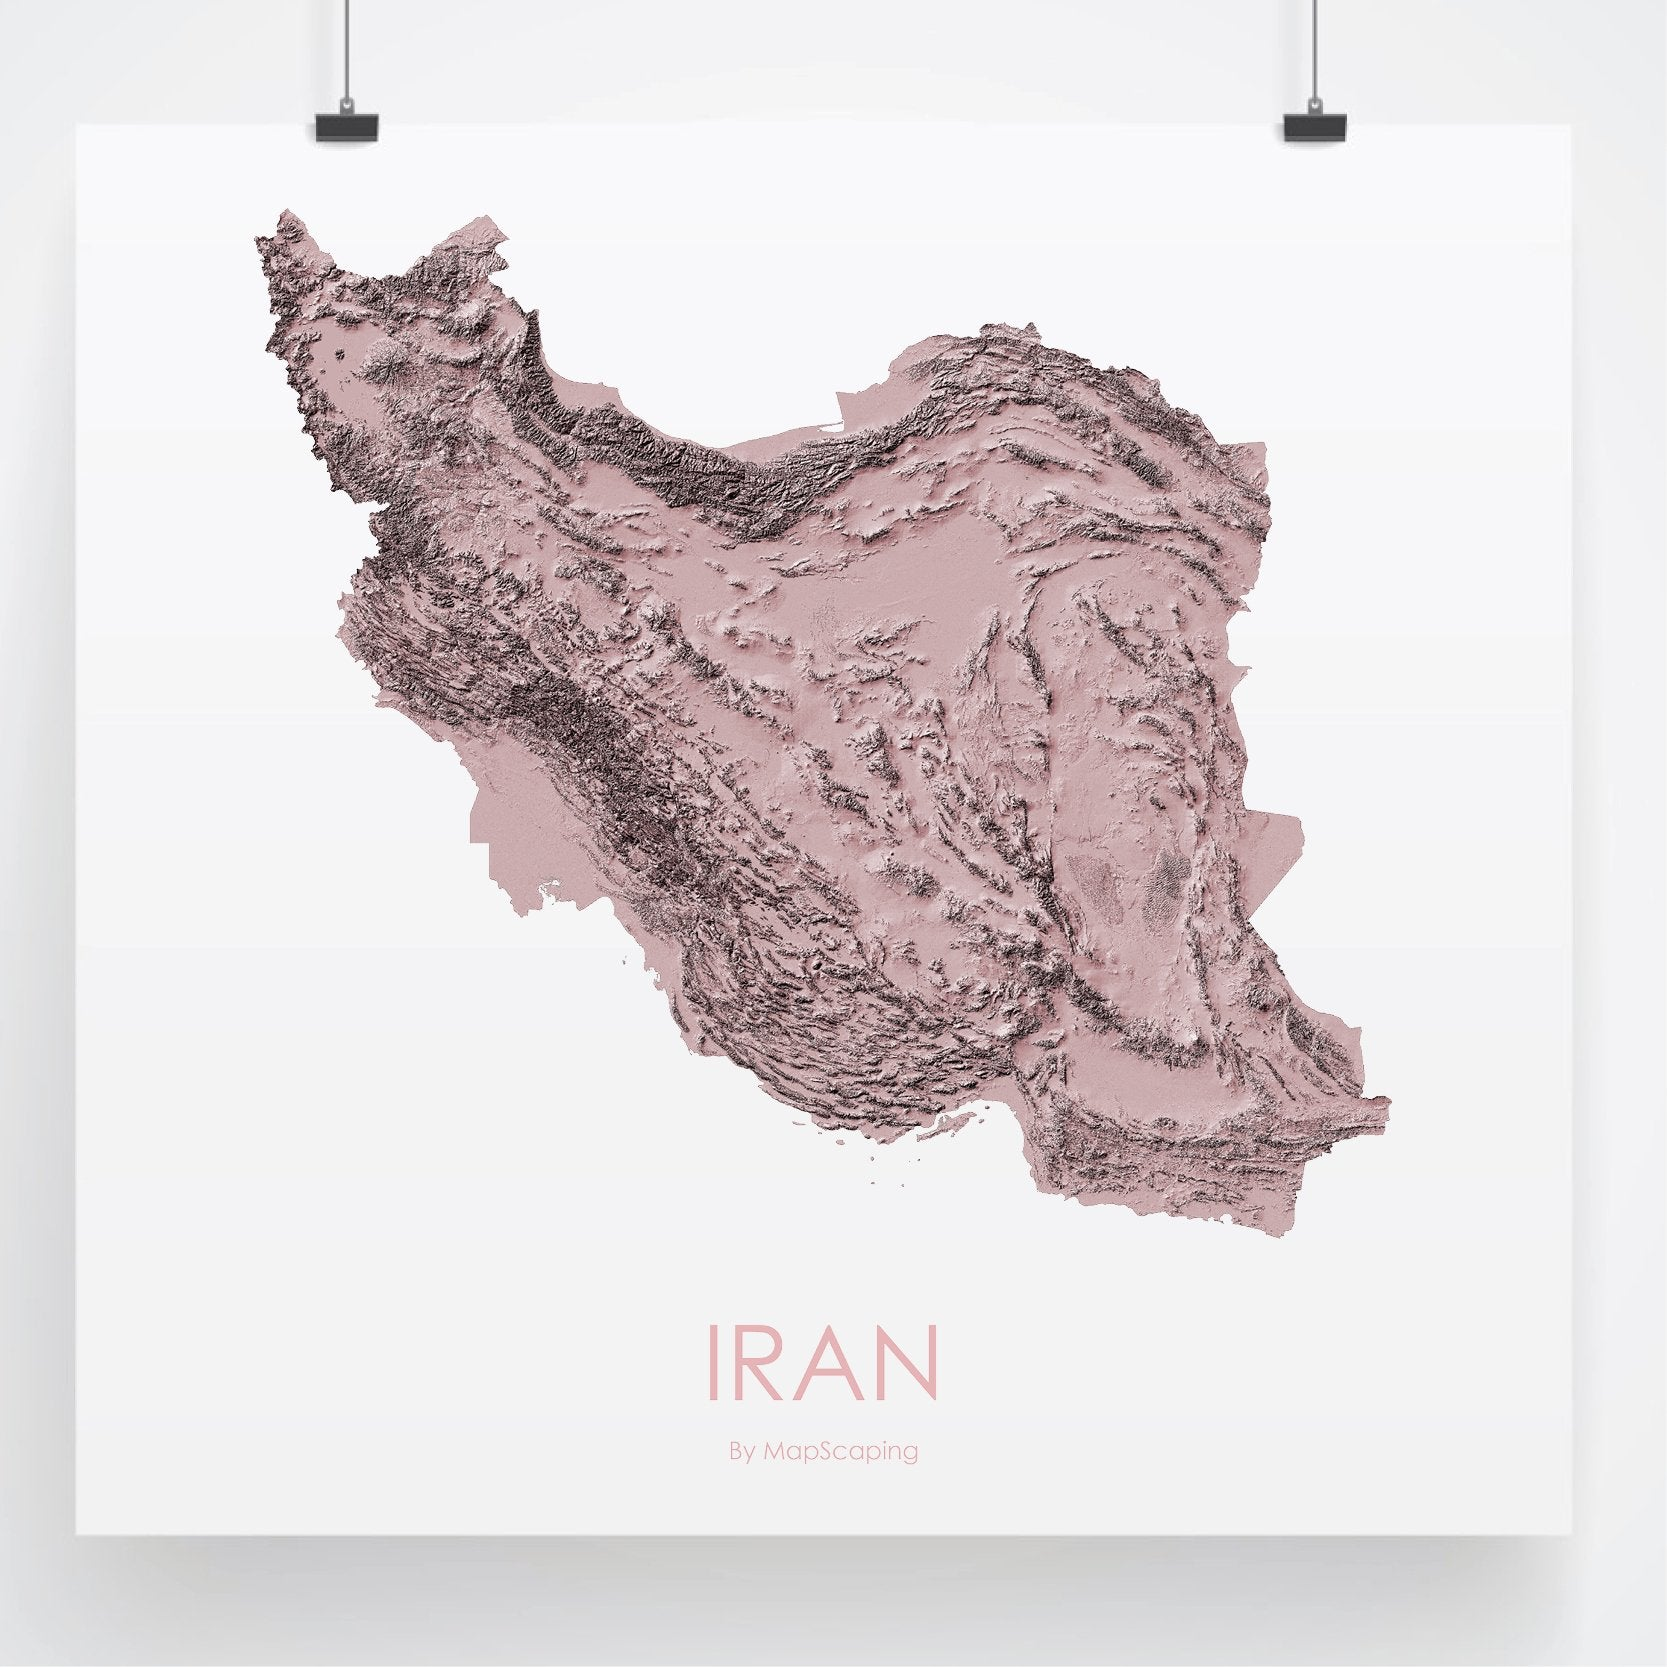 Iran 3D Rose -Topographic map art by MapScaping